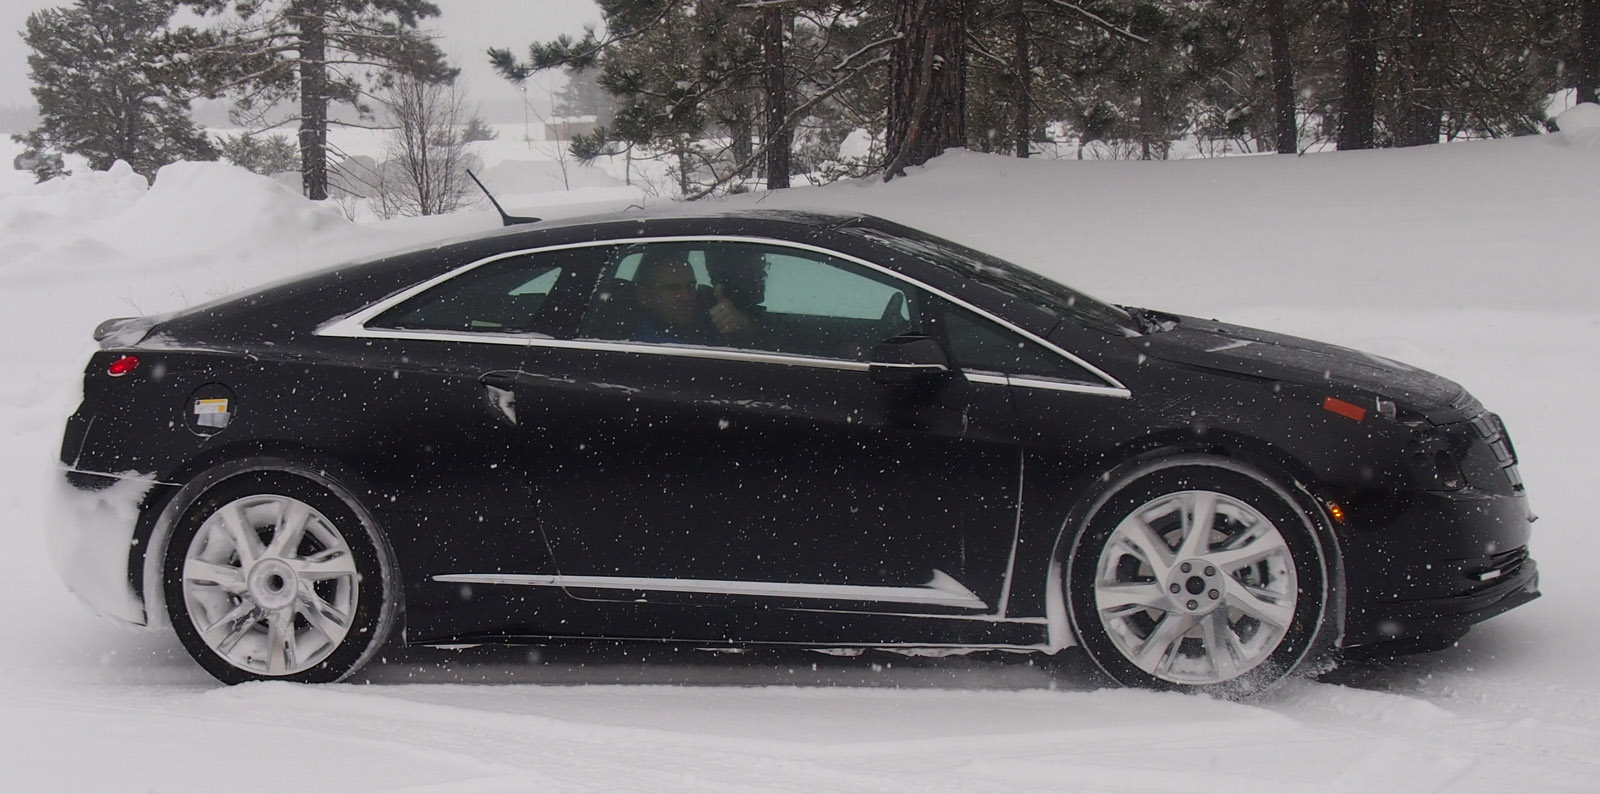 2014 Cadillac ELR Chassis Testing